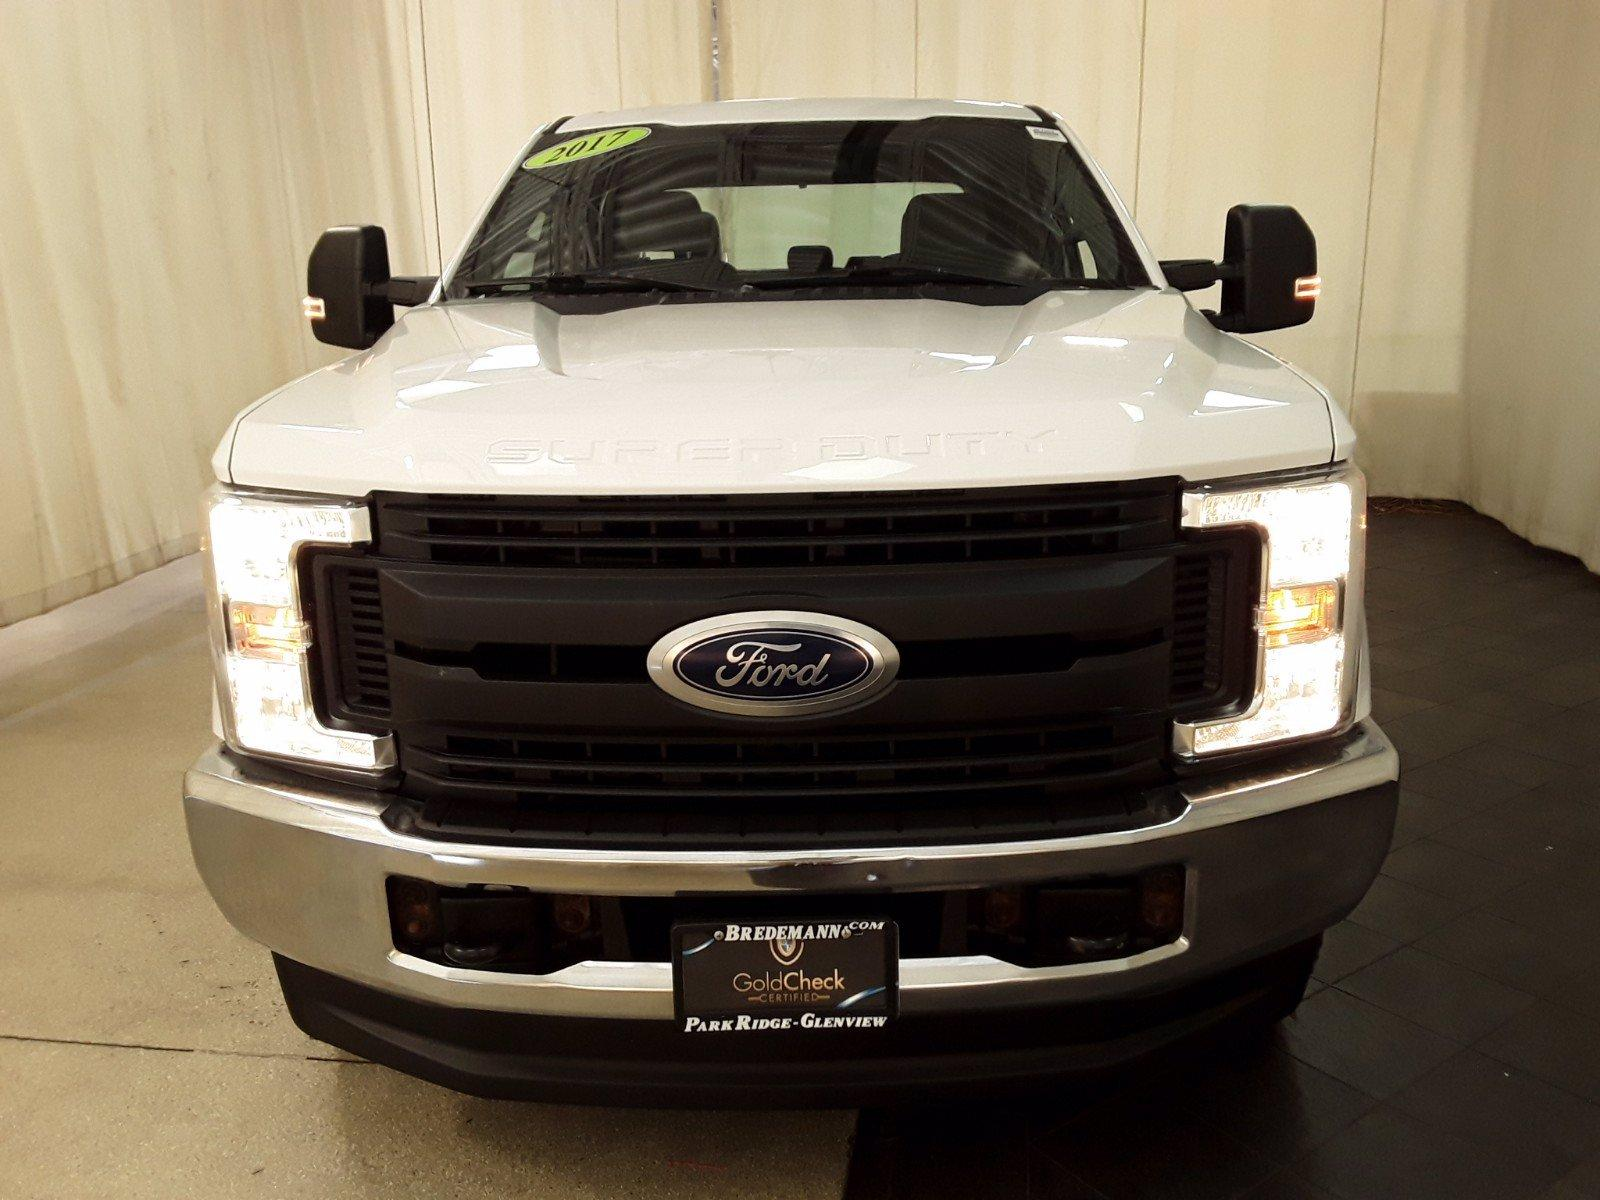 2017 Ford F-250 Crew Cab 4x4, Pickup #BP7504 - photo 24